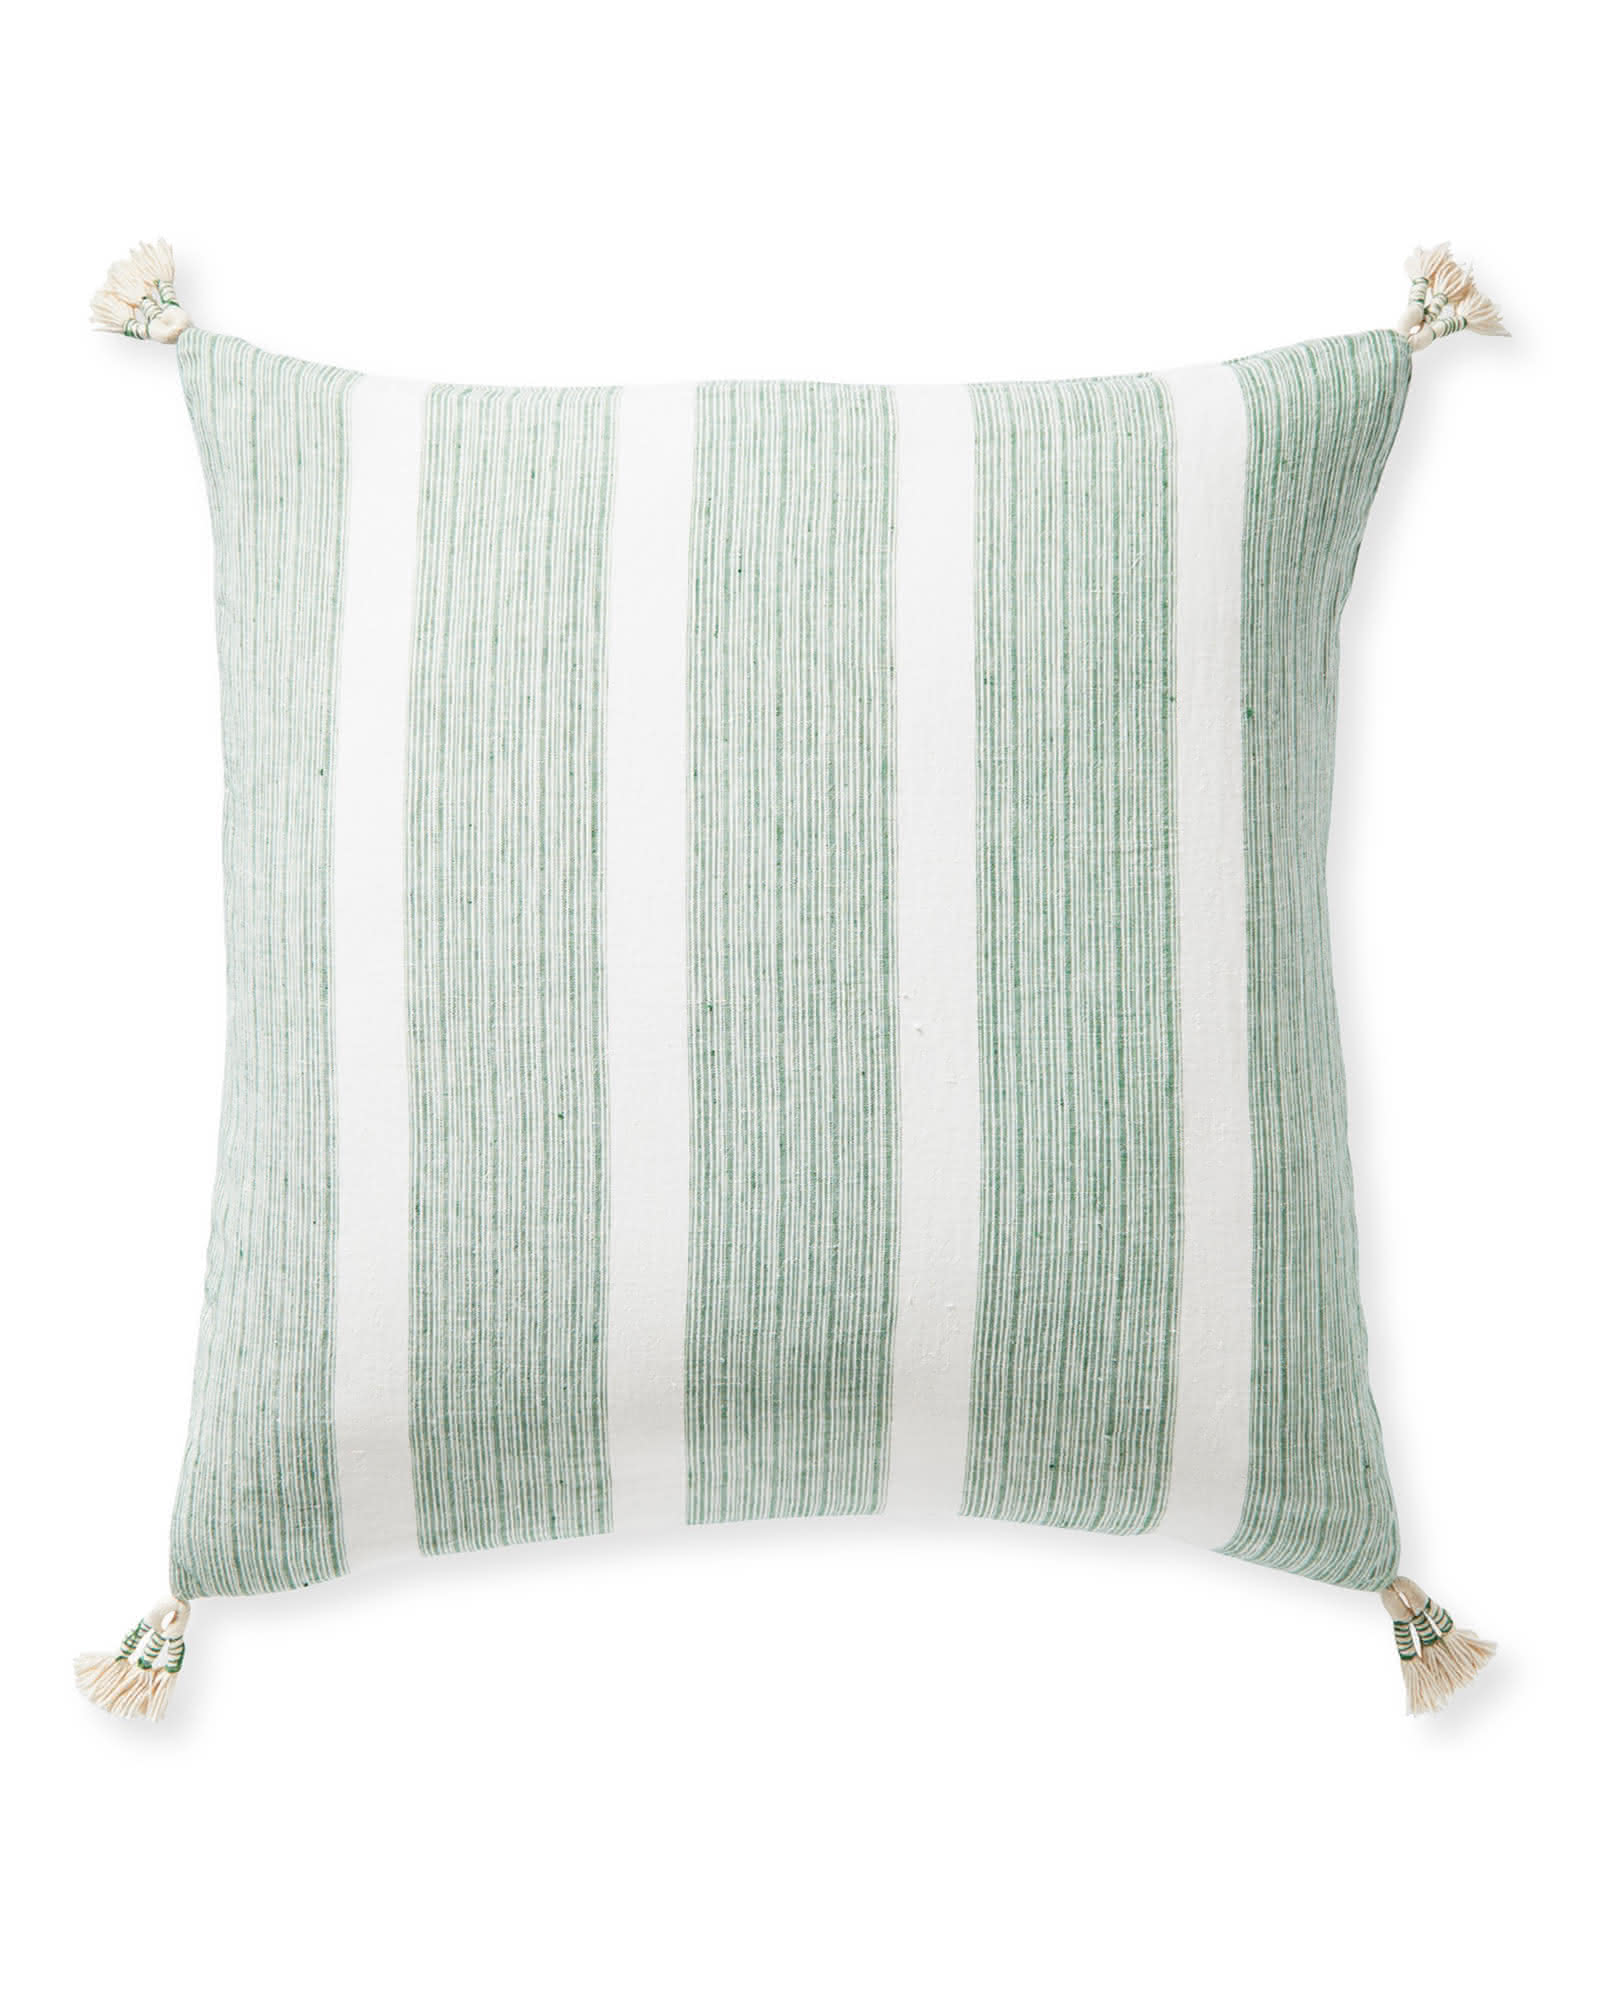 Costa Nova Pillow Cover, Moss